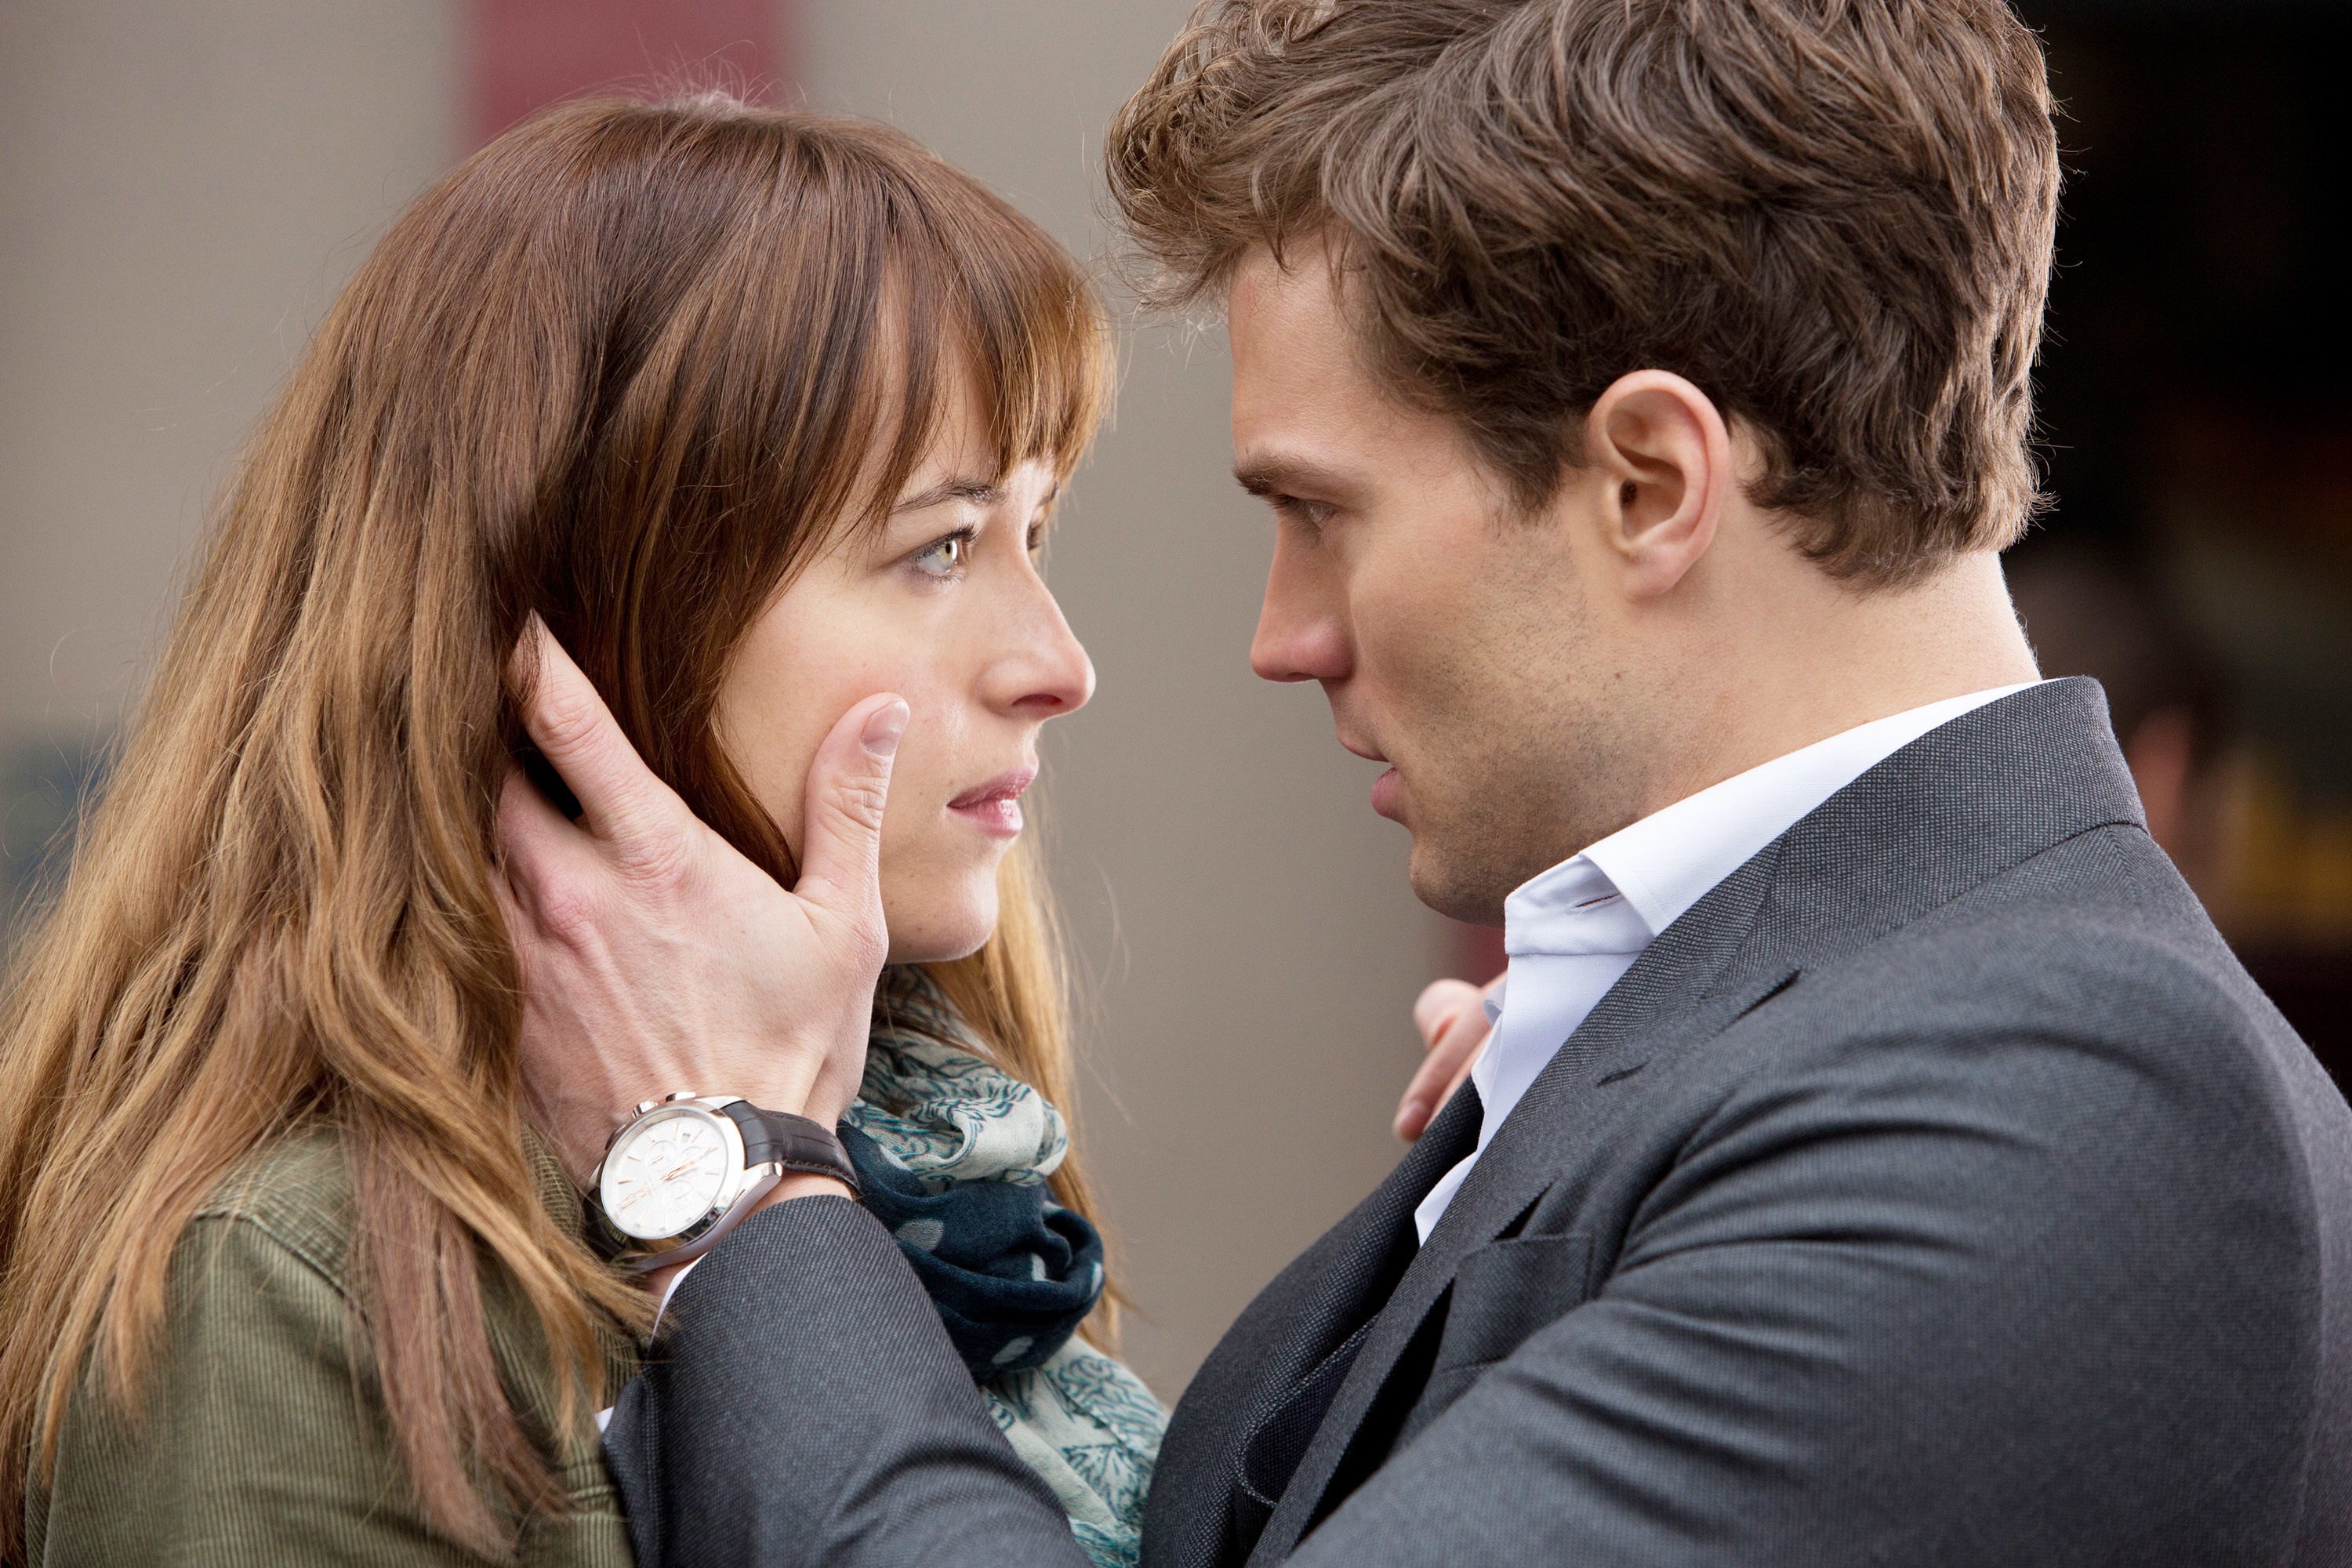 Ana and Christian looking into each other's eyes